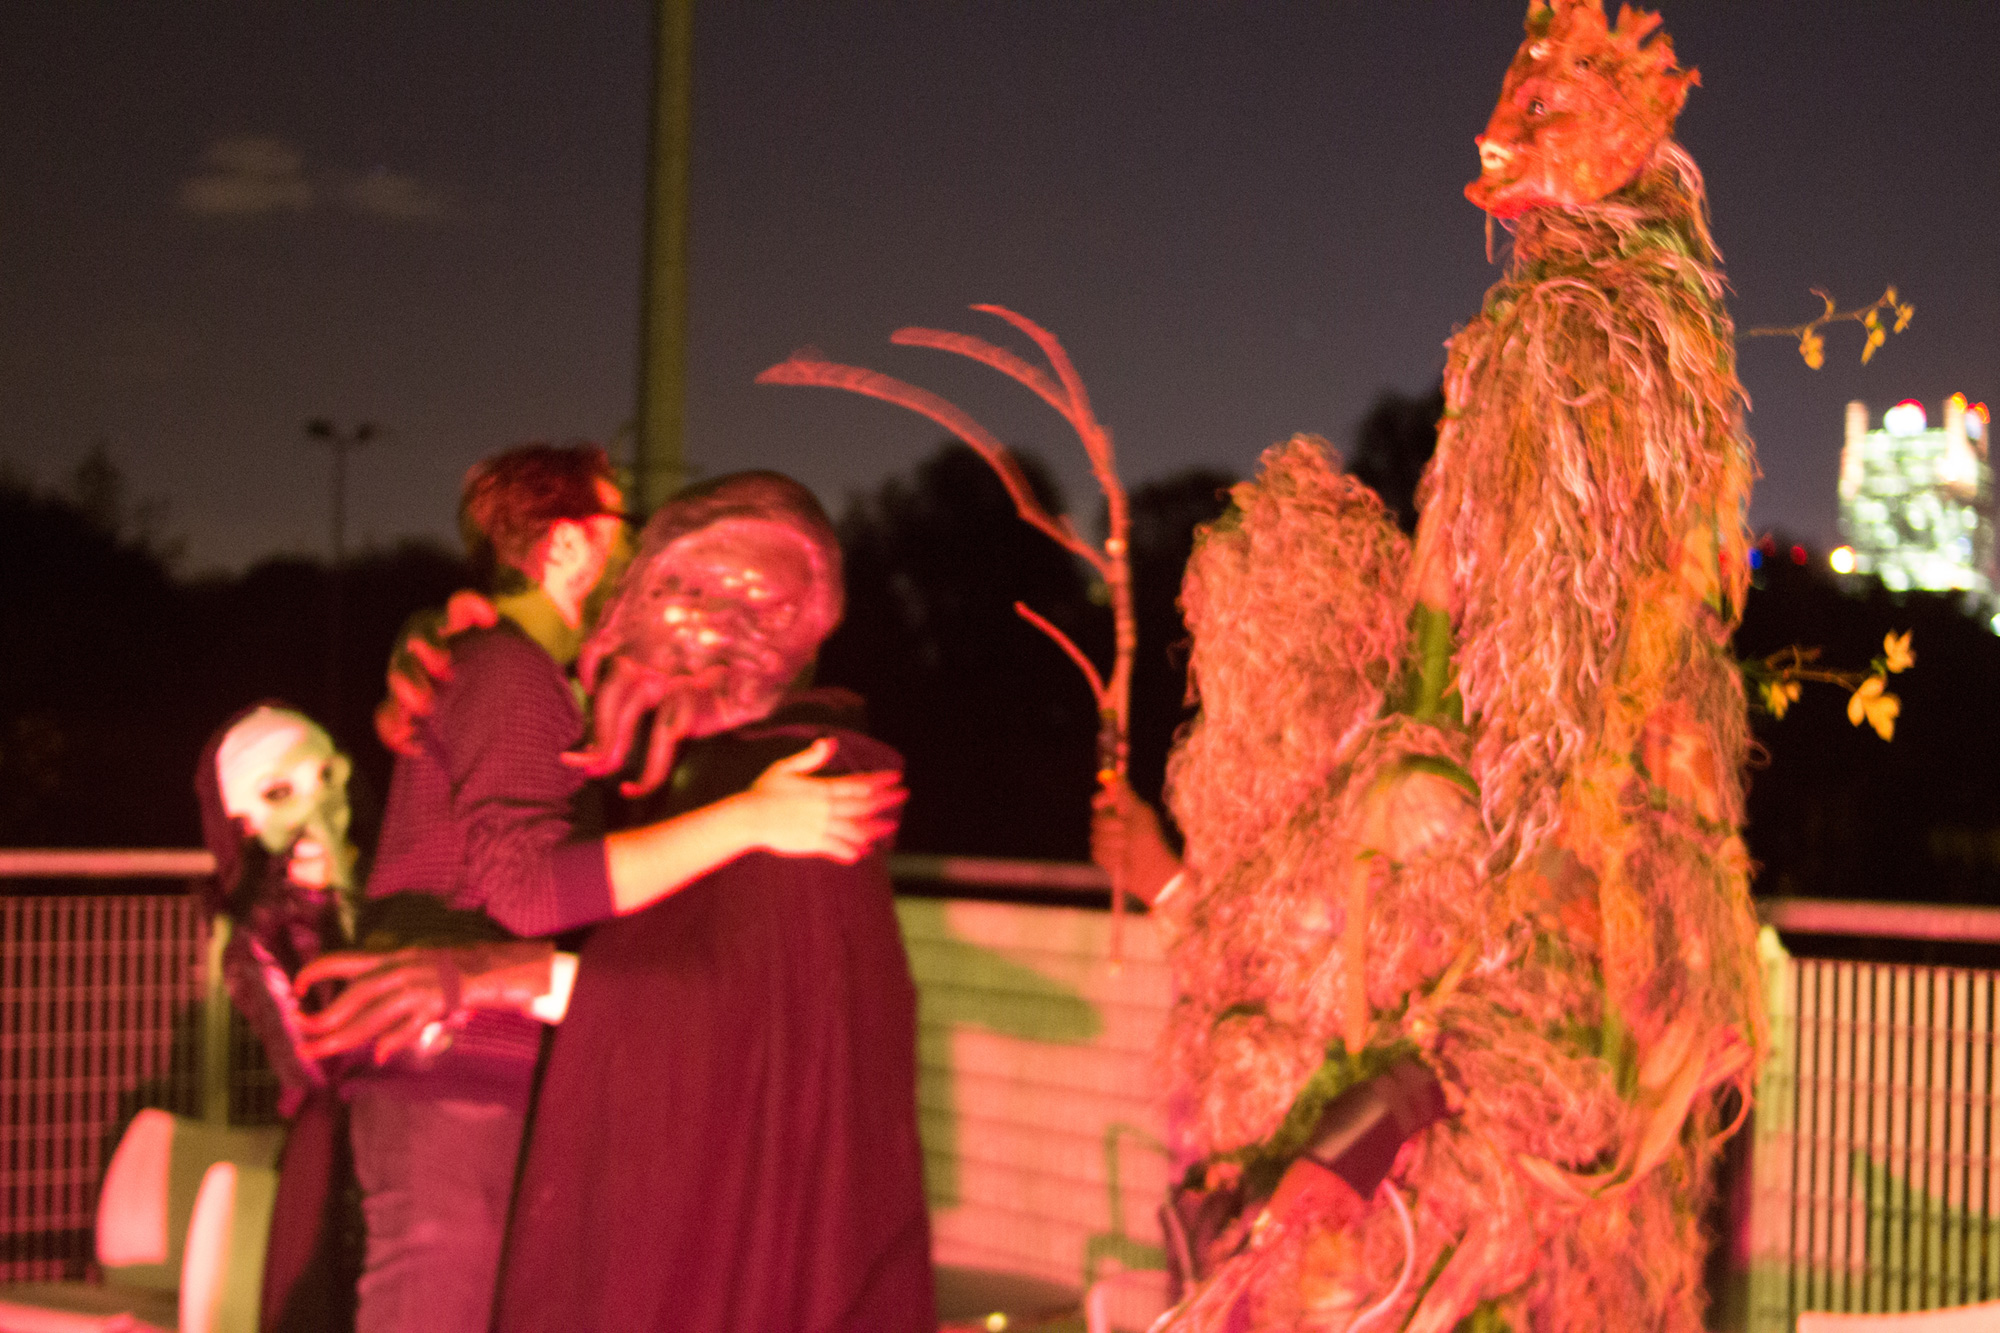 That's me, hugging a shogghastat the end of the evening.